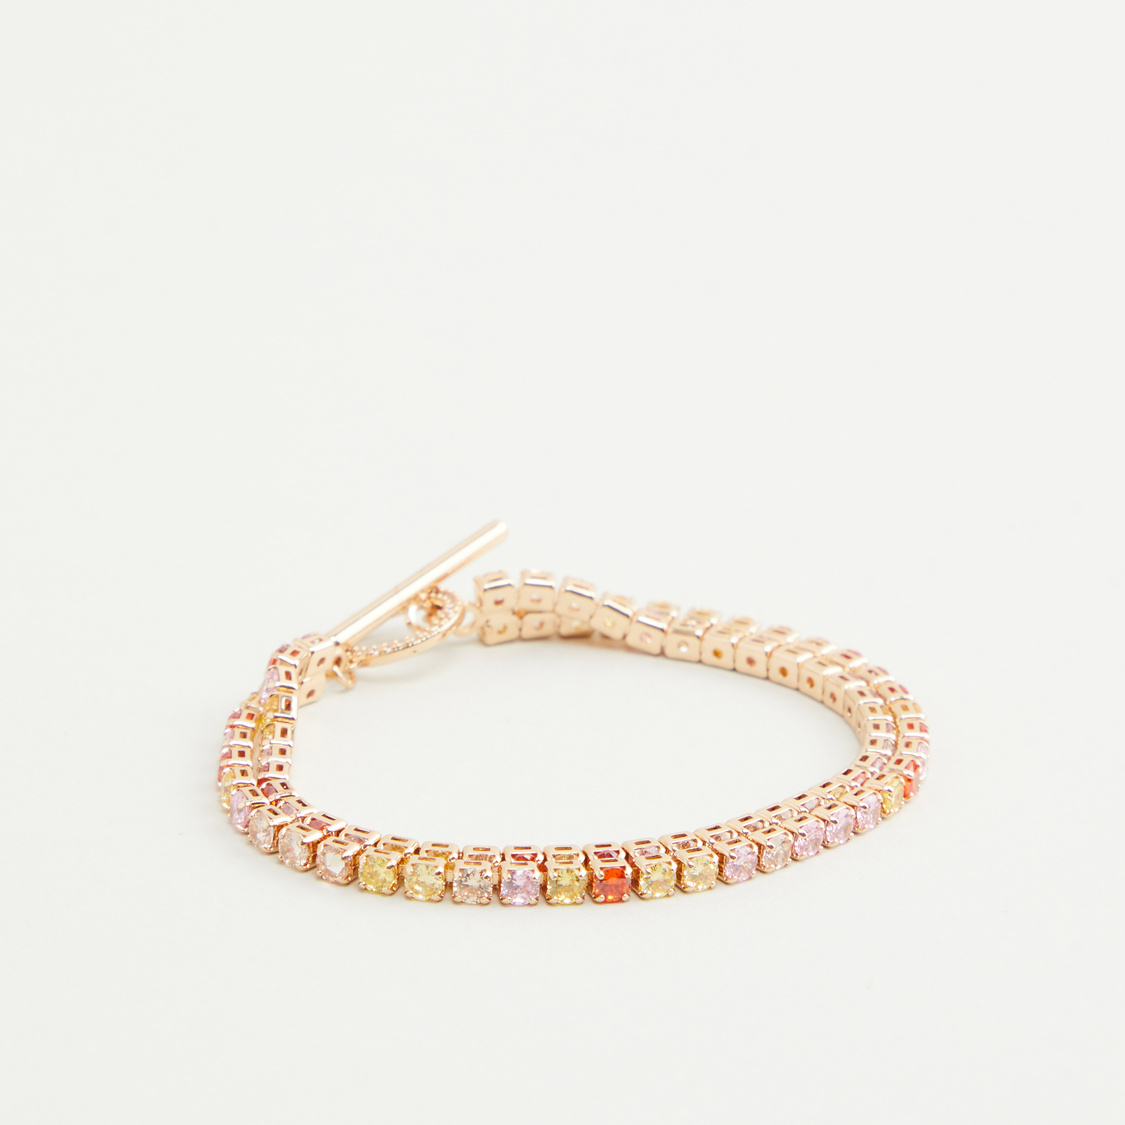 Studded Bracelet with Toggle Closure